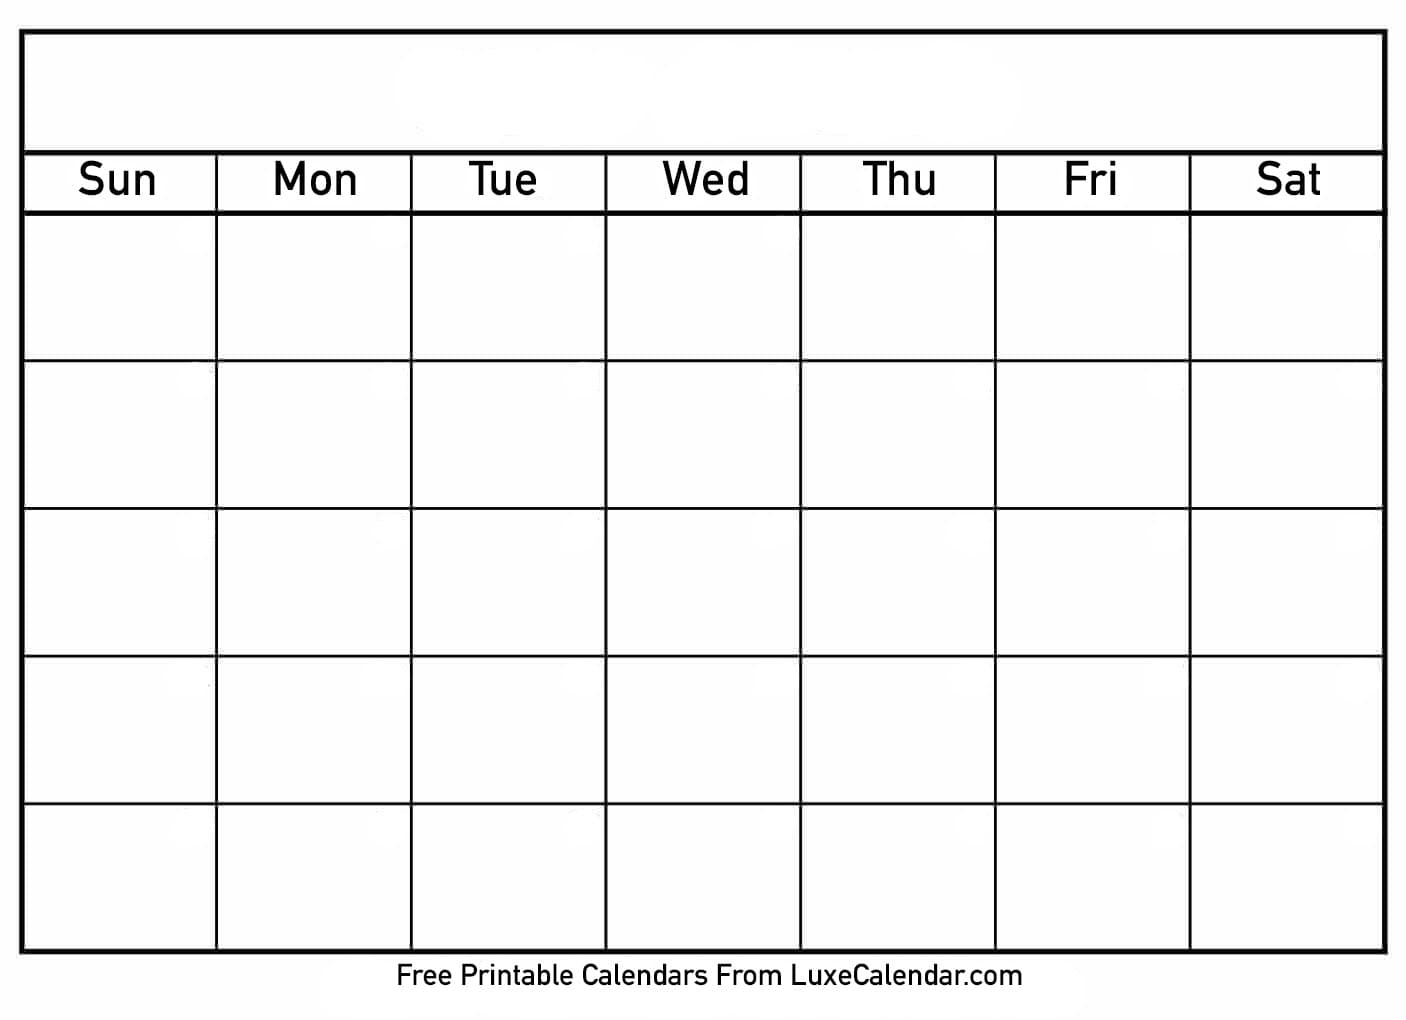 Blank Printable Calendar - Luxe Calendar pertaining to Printable Calendar Templates Full Page